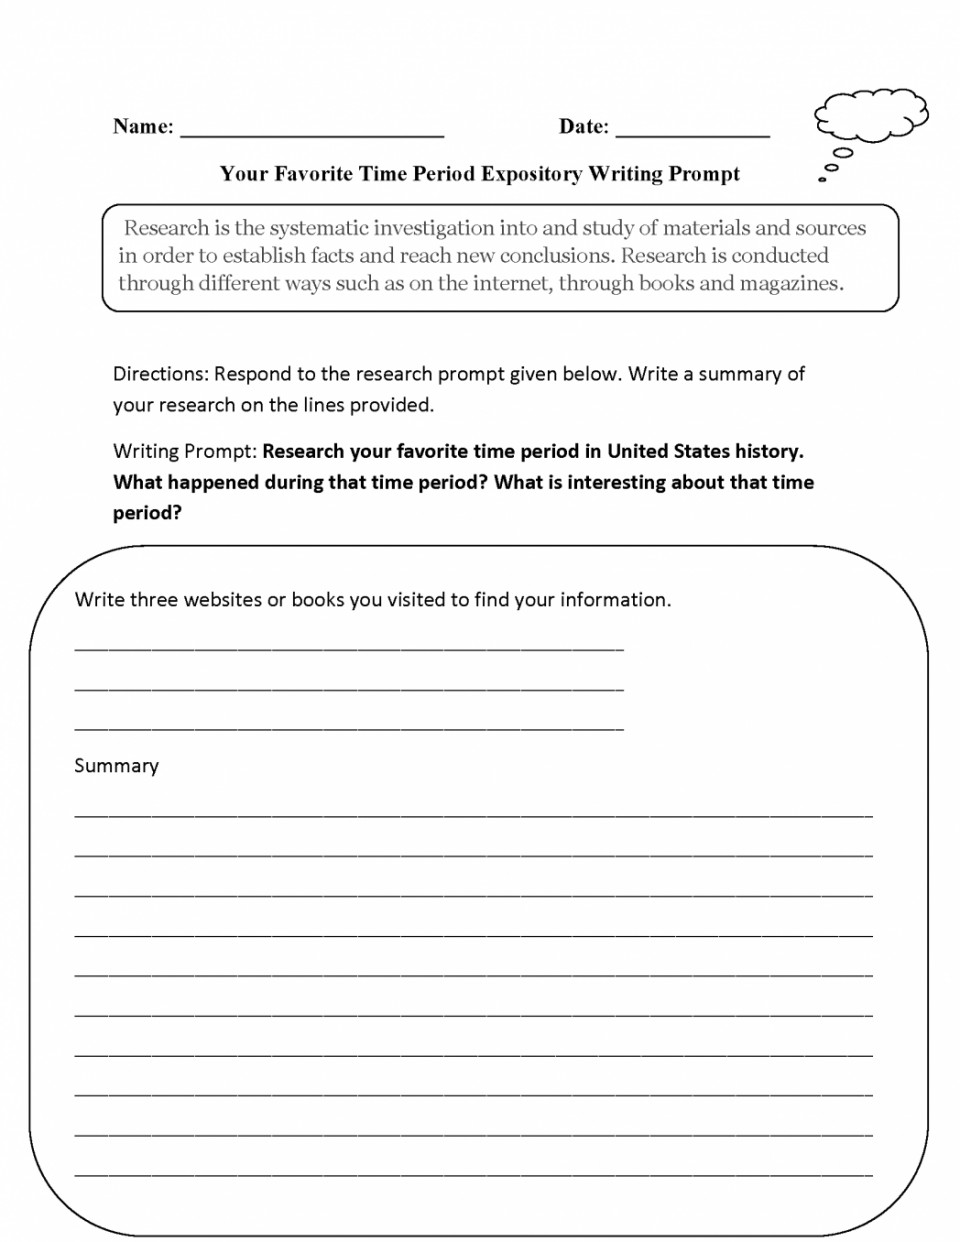 018 Essay Example Good Informative Topics Prompts Favorite Time Period Expository Writing P To Write An On The Topic Of Immigration Remarkable For 4th Grade High School 6th Graders 960